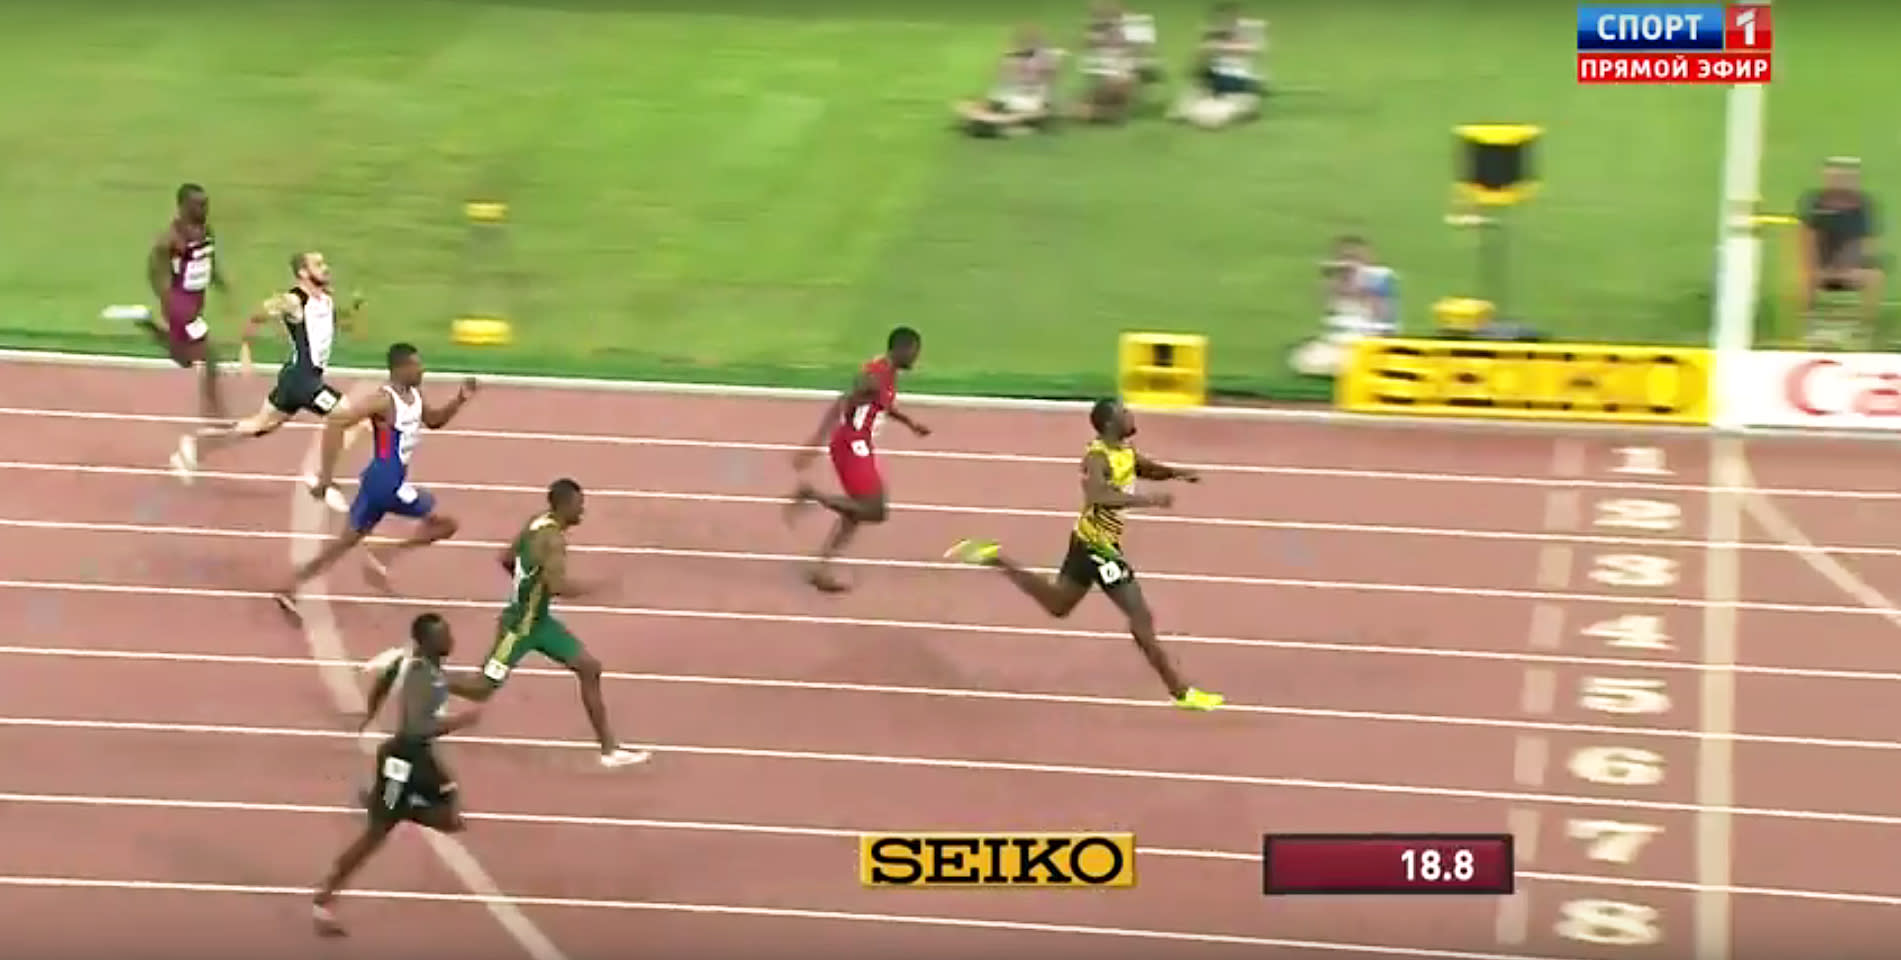 Usain Bolt starts jogging before the finish line, still destroys everyone in the 200 meters